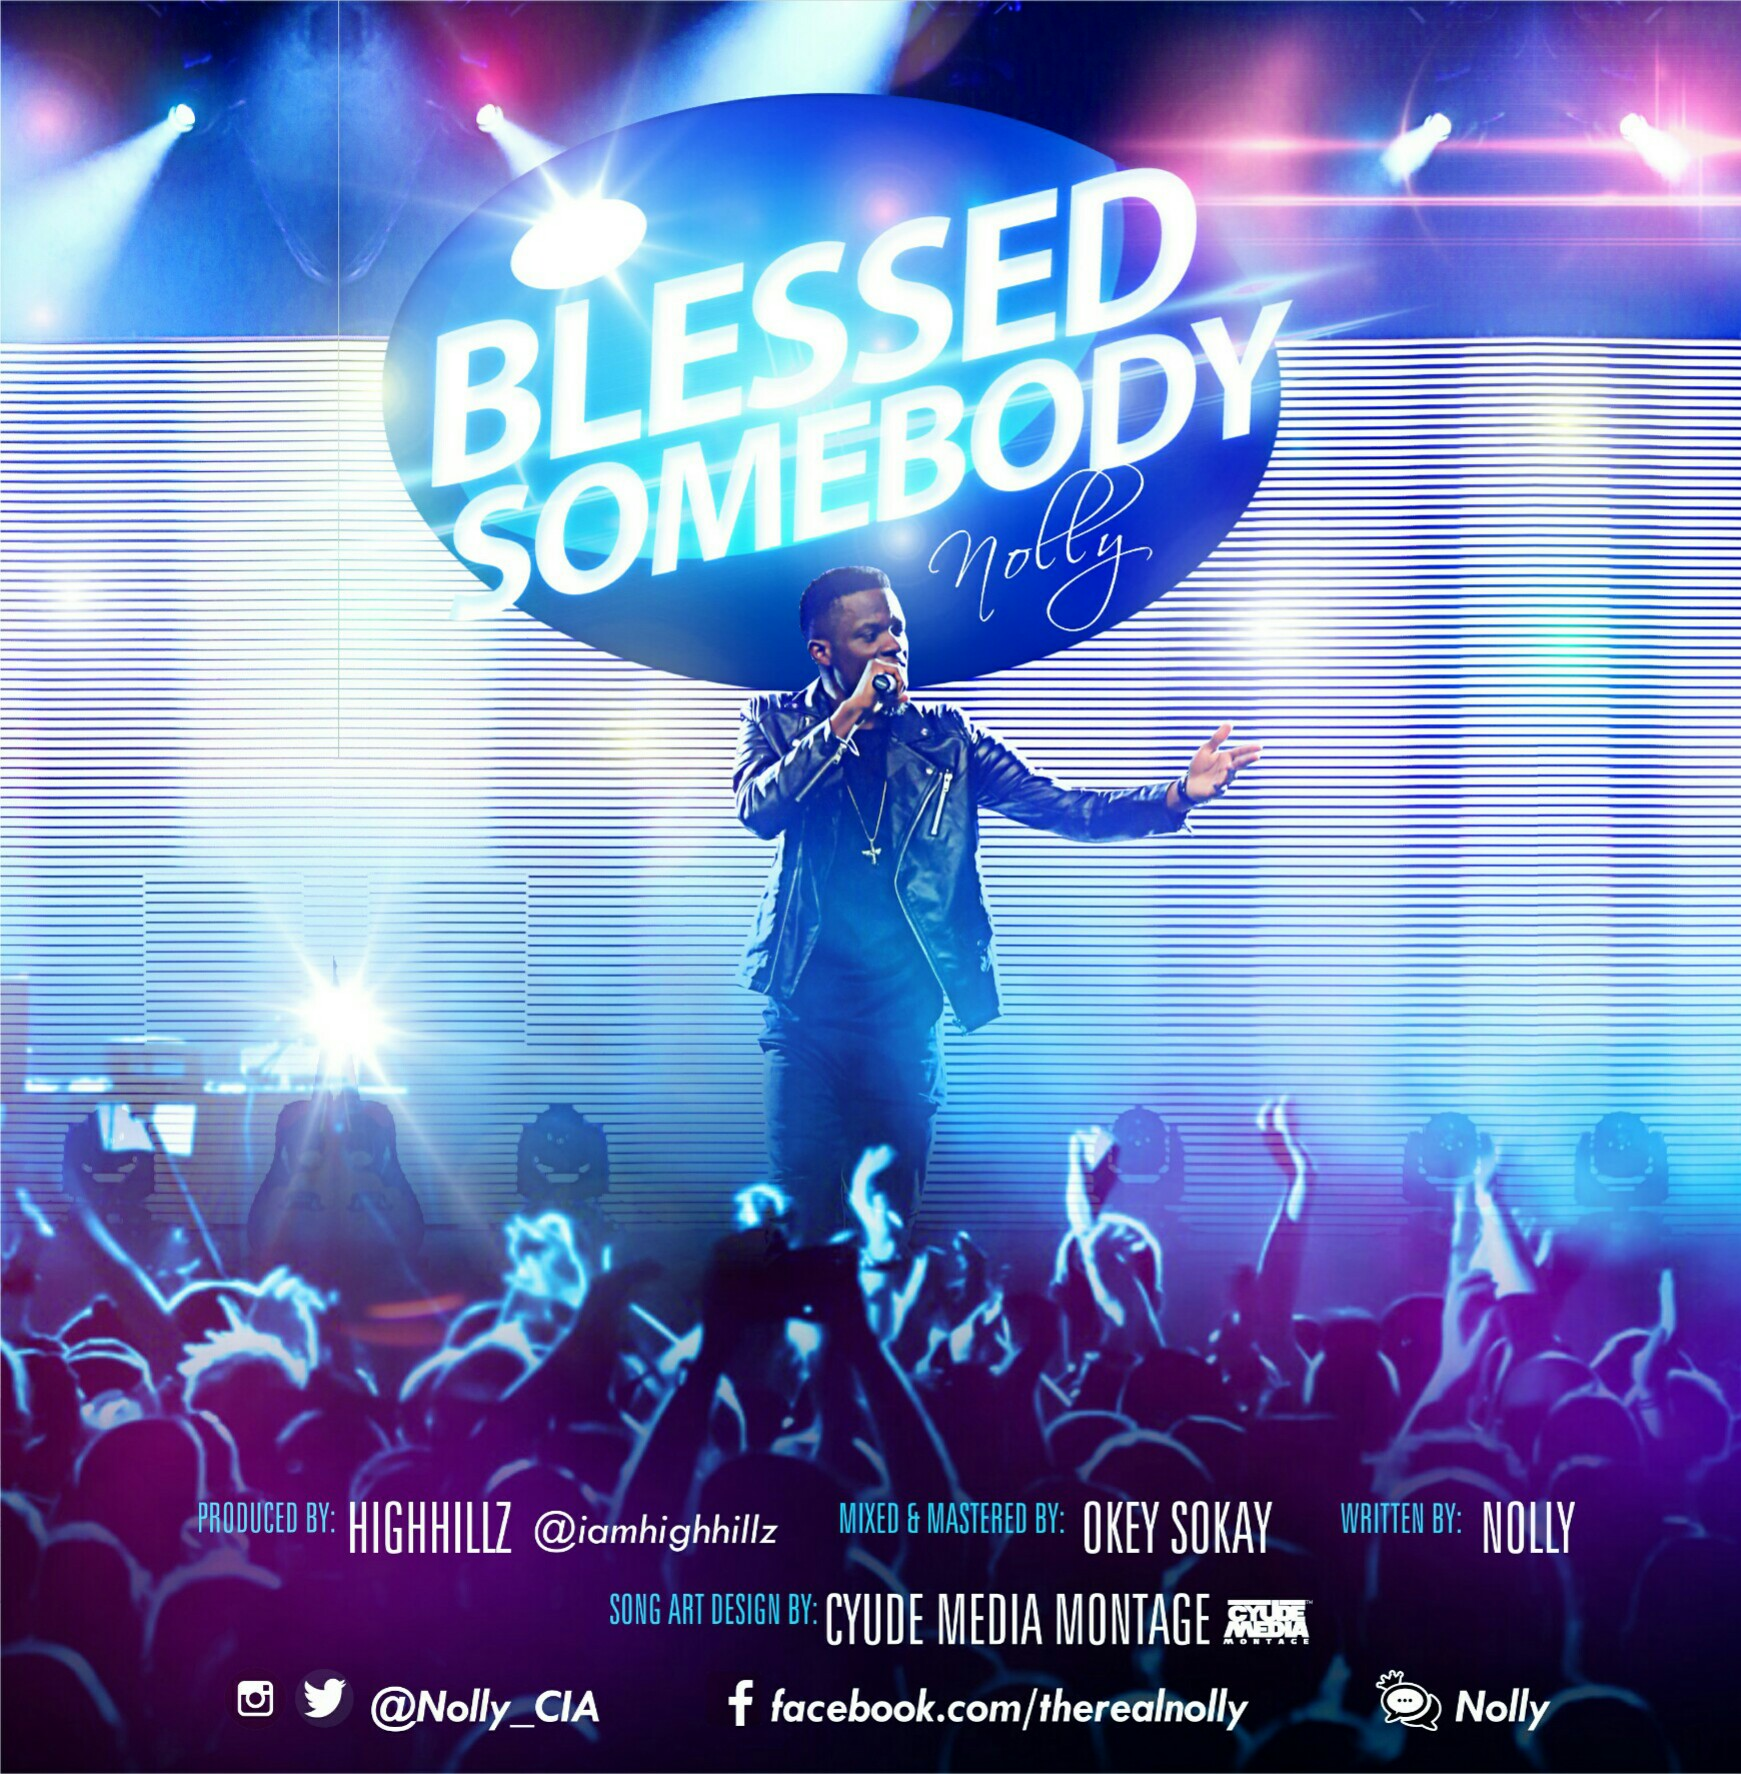 DOWNLOAD Music: Nolly – Blessed Somebody (Free Verse)